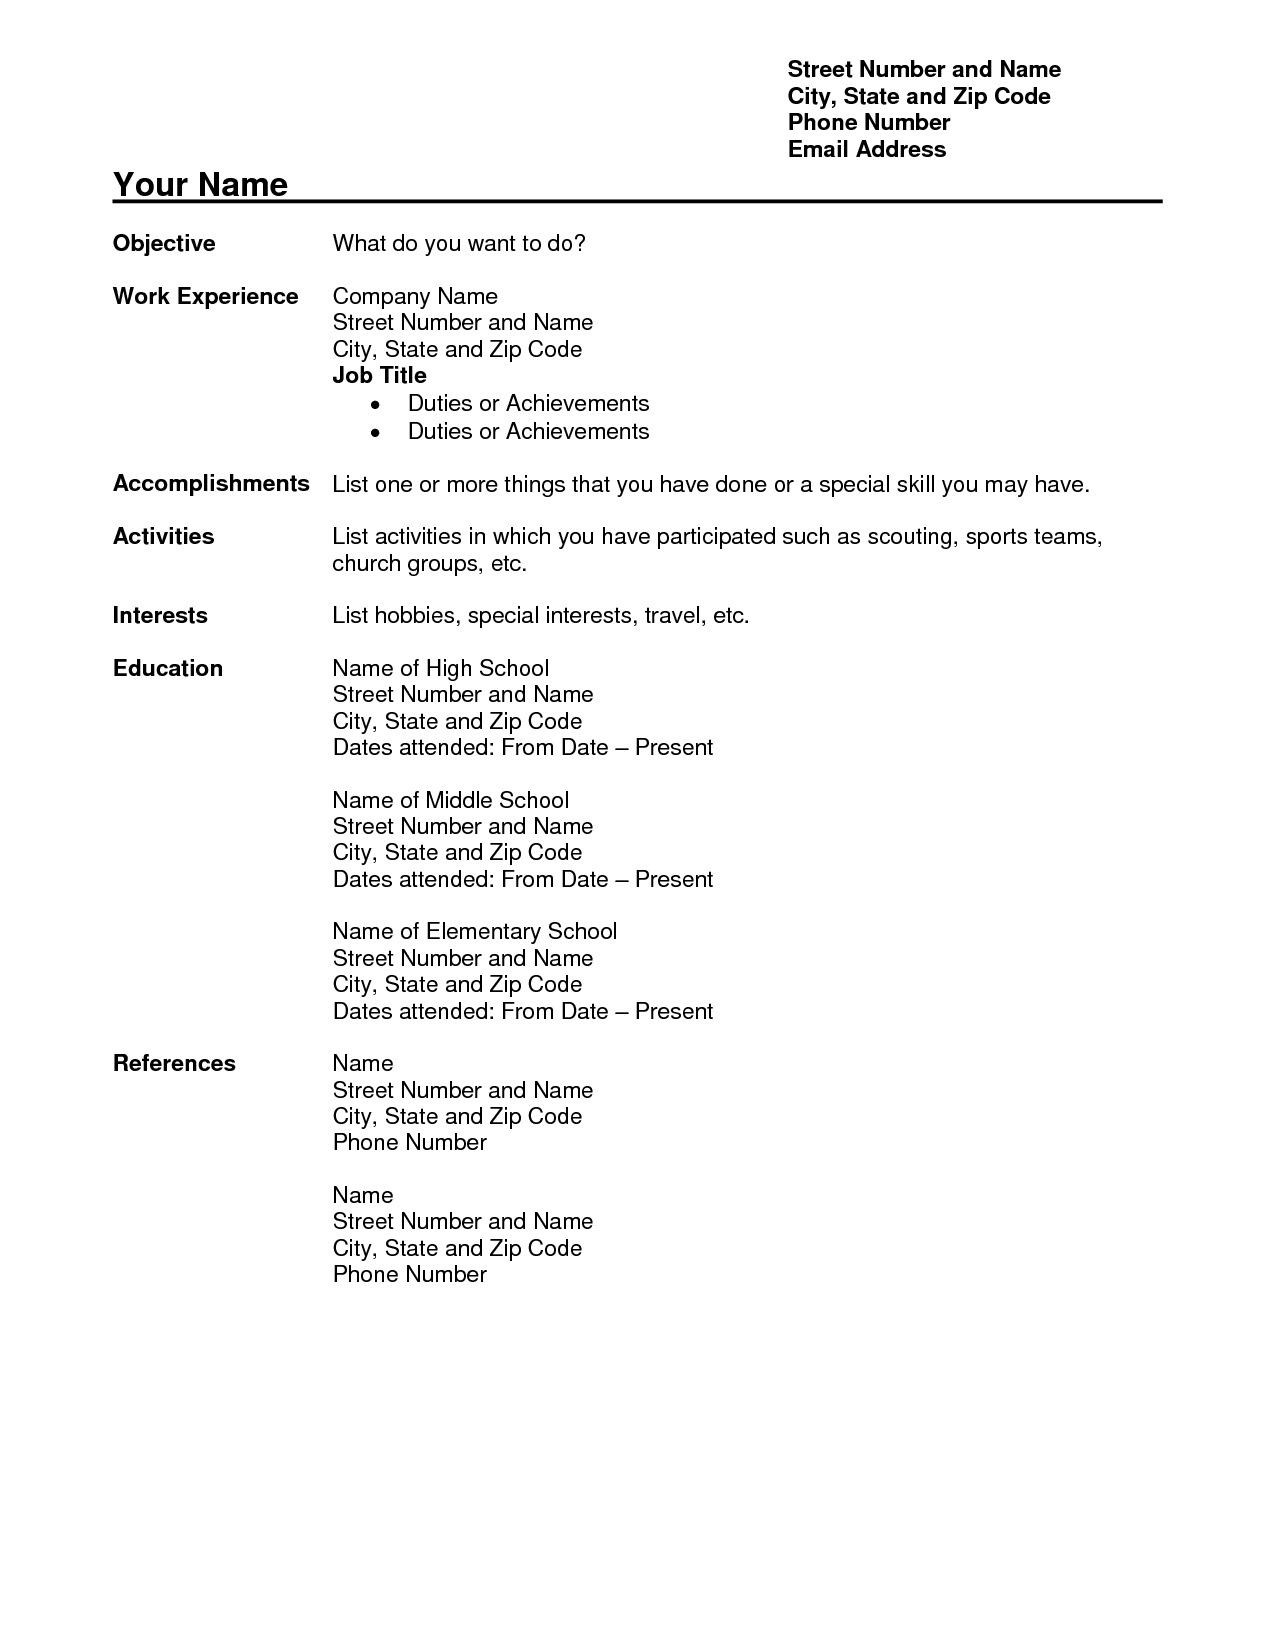 Amazing Free Teacher Resume Templates Download Free Teacher Resume Templates  Download, Free Teacher Resume Templates Microsoft  Free Resume Template Downloads